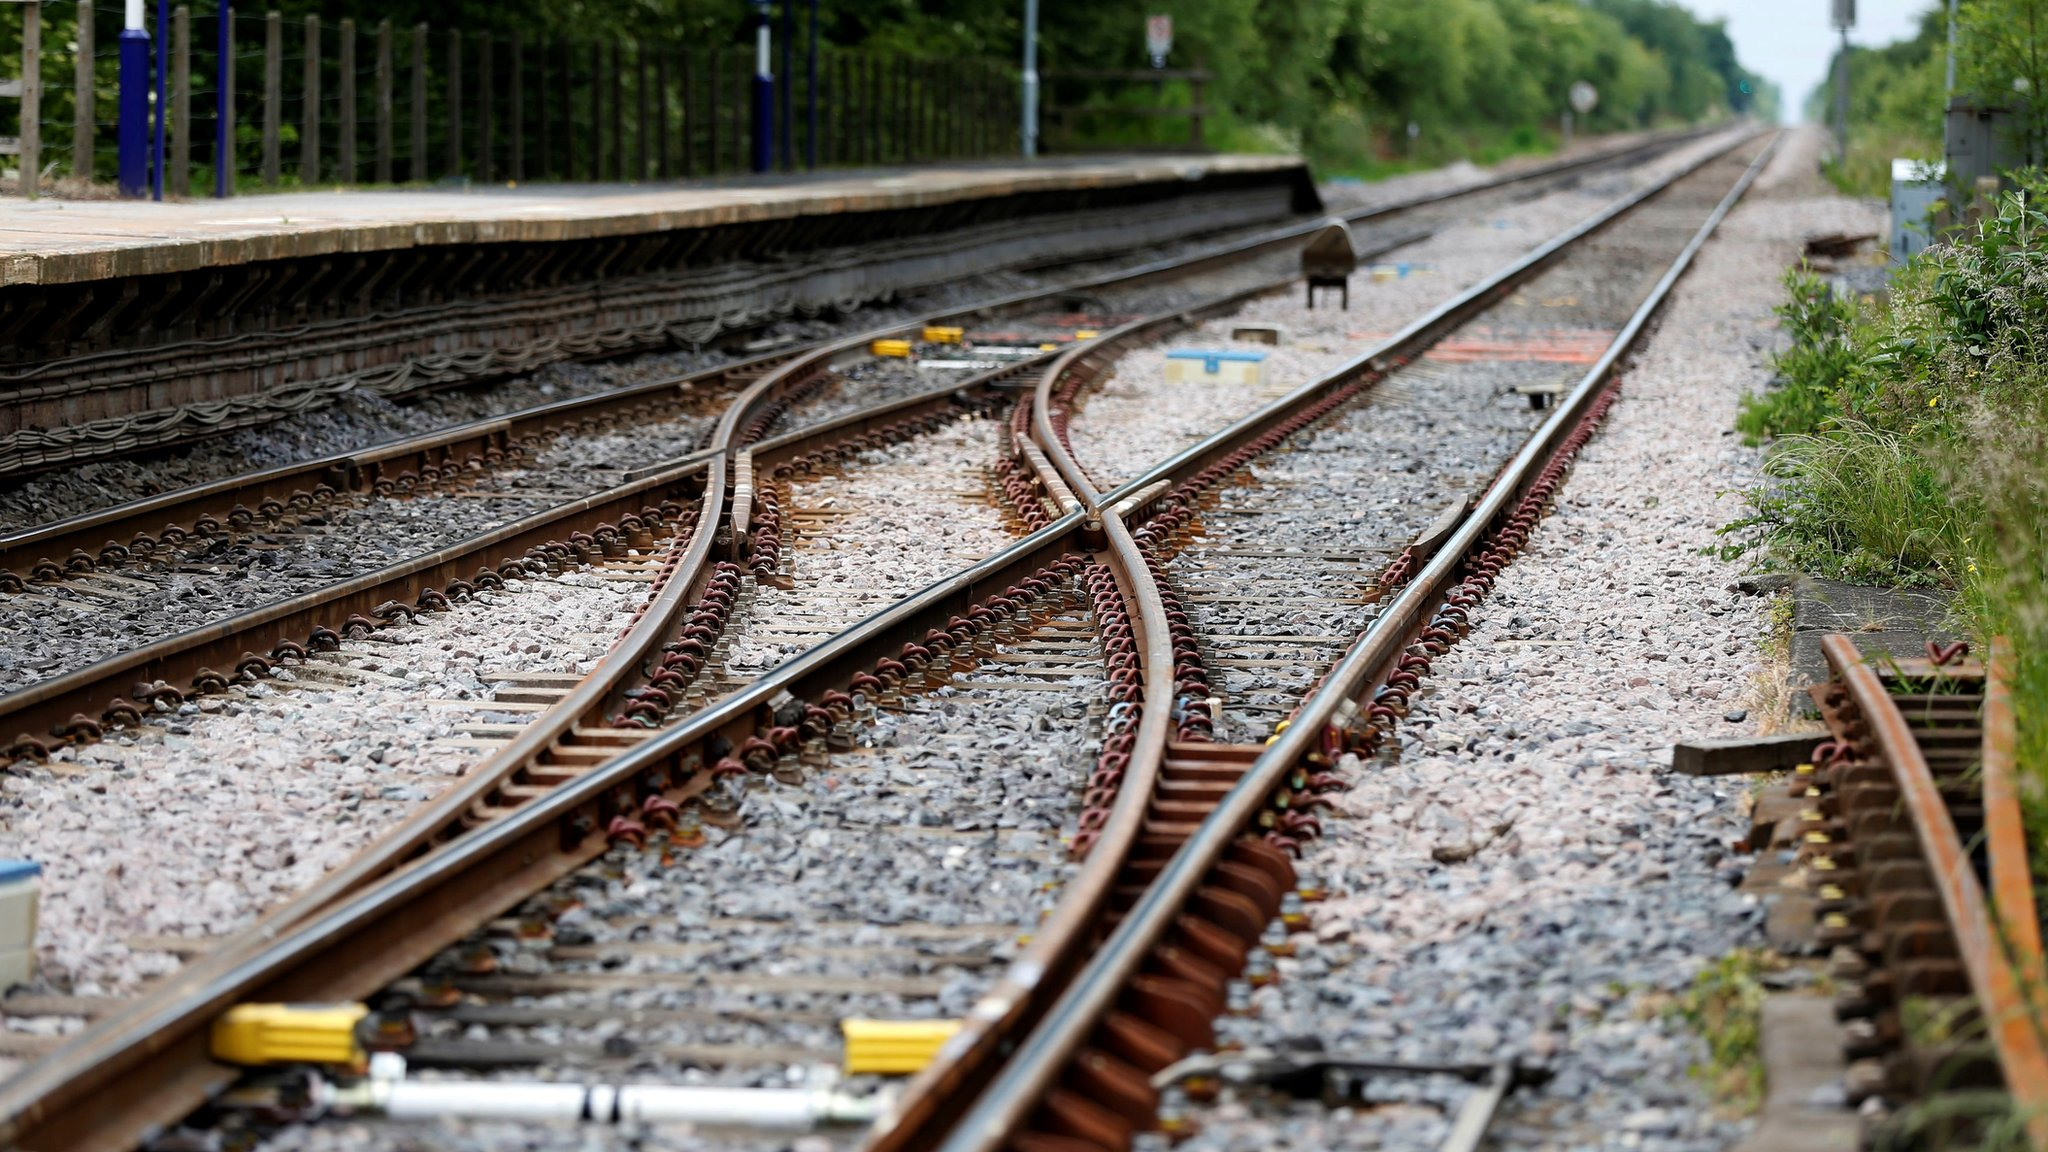 Trains and track come together in rail management revamp